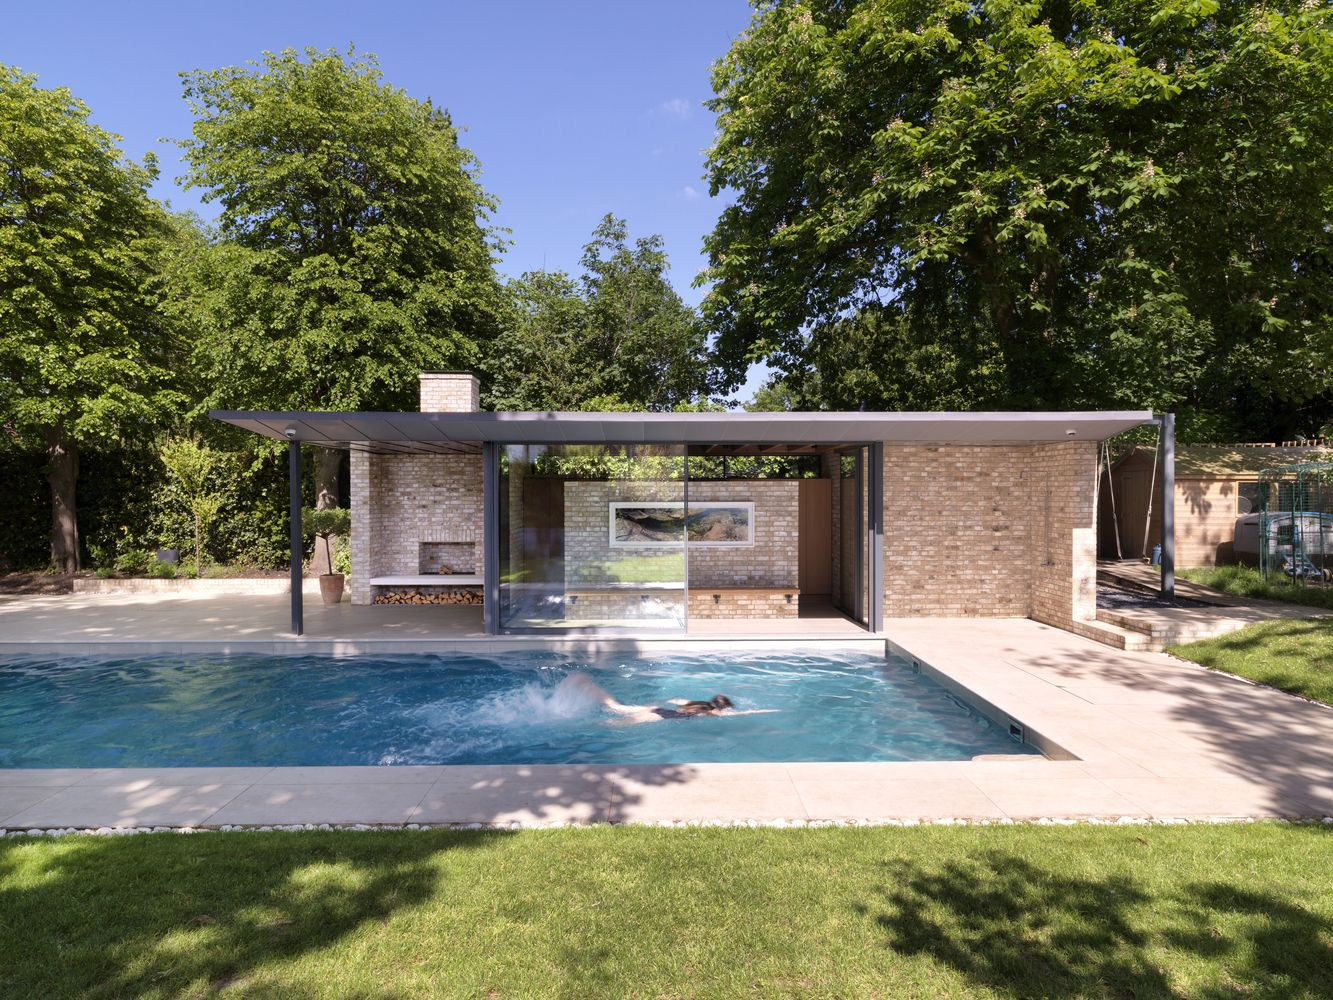 Gallery Of Pavilions Within A Garden Threefold Architects 1 Pool Houses Pool Patio Swimming Pool Designs